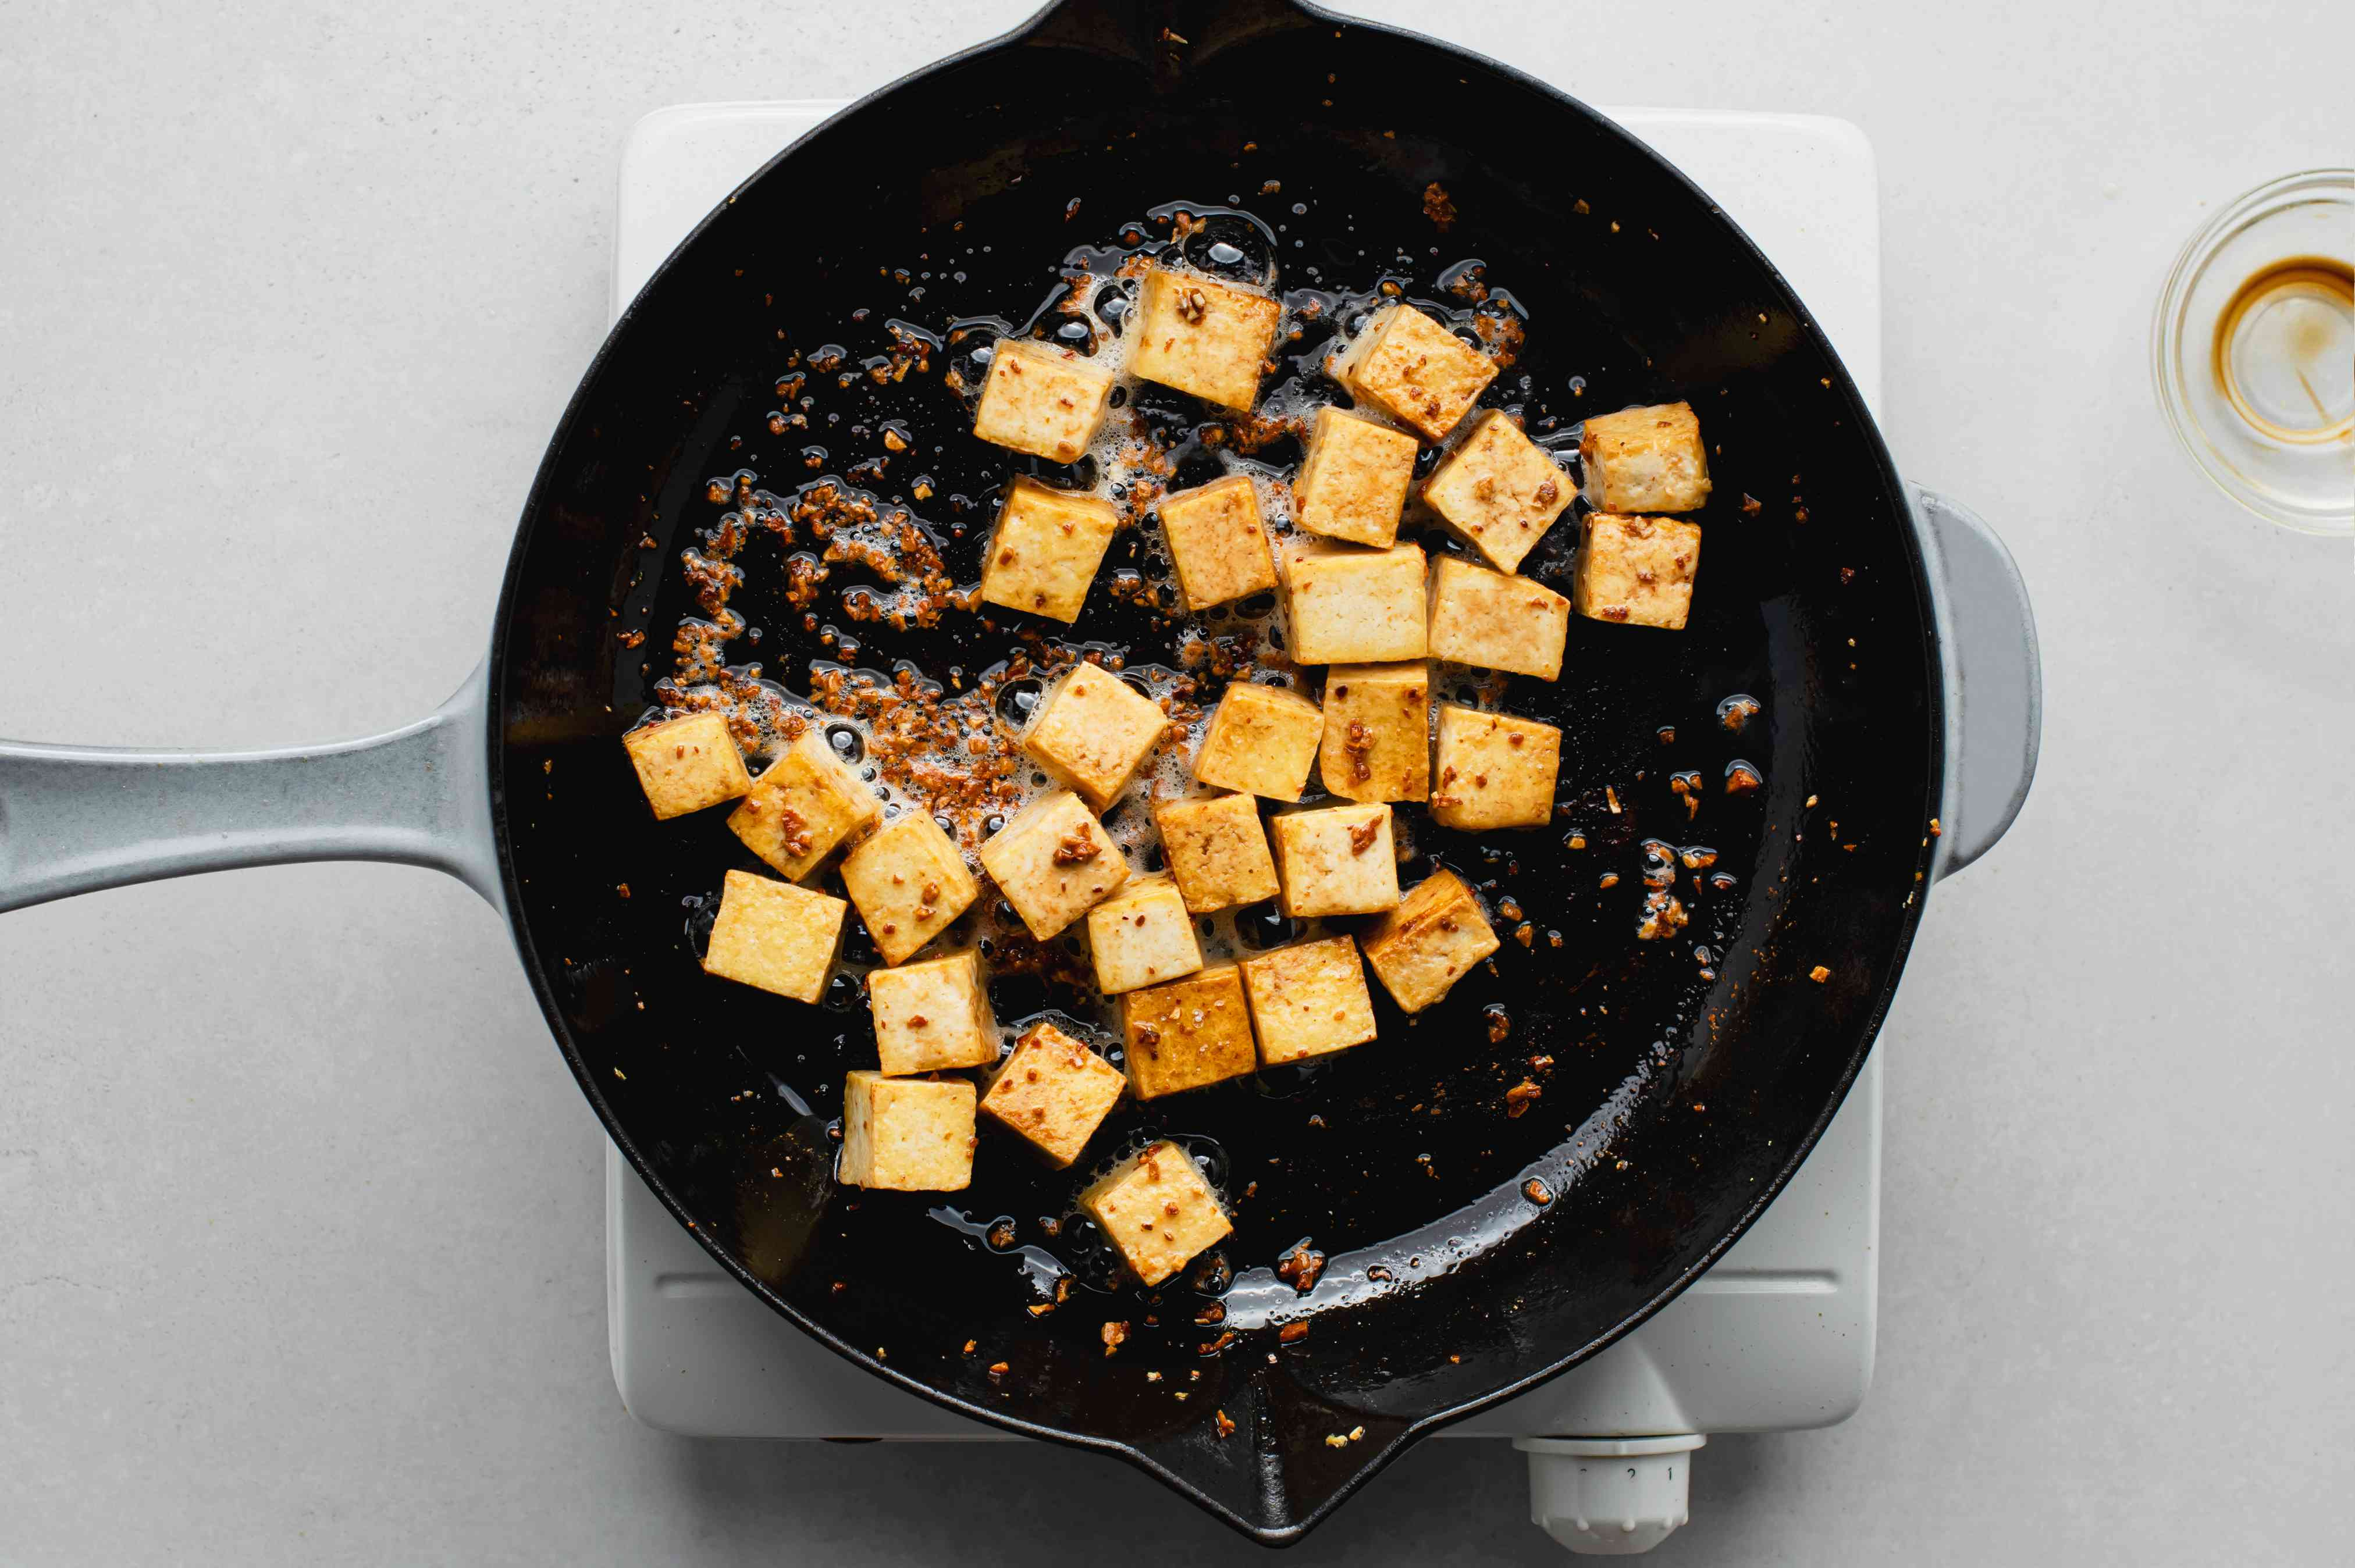 tofu and garlic in a skillet with soy sauce